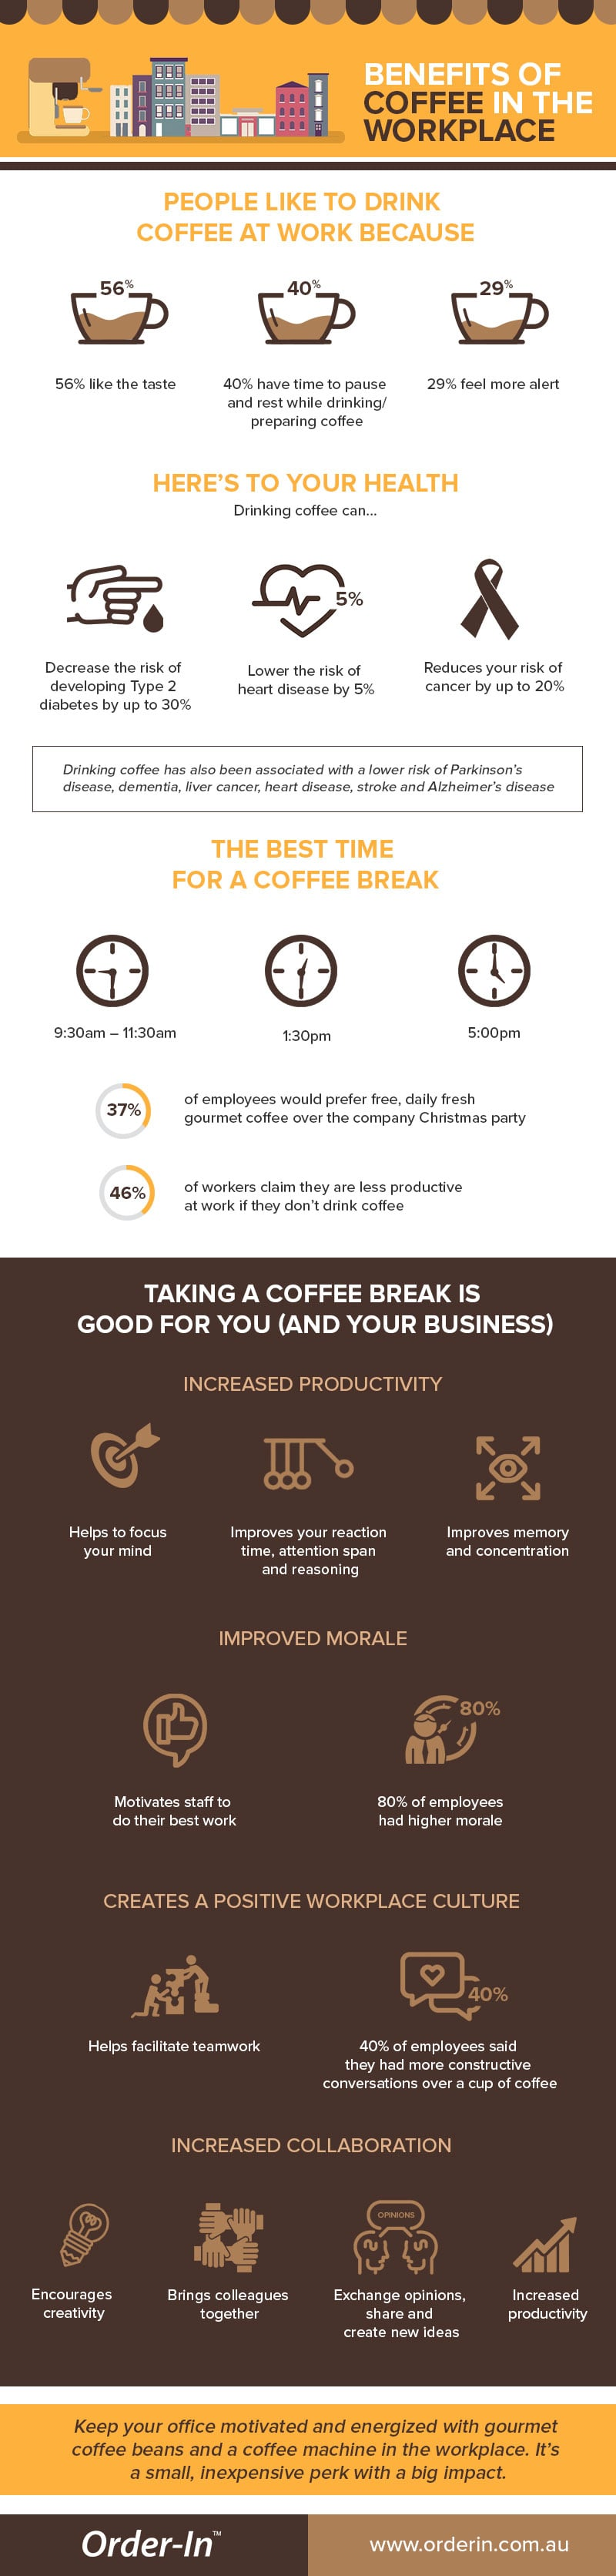 Benefits of coffee in the workplace infographic